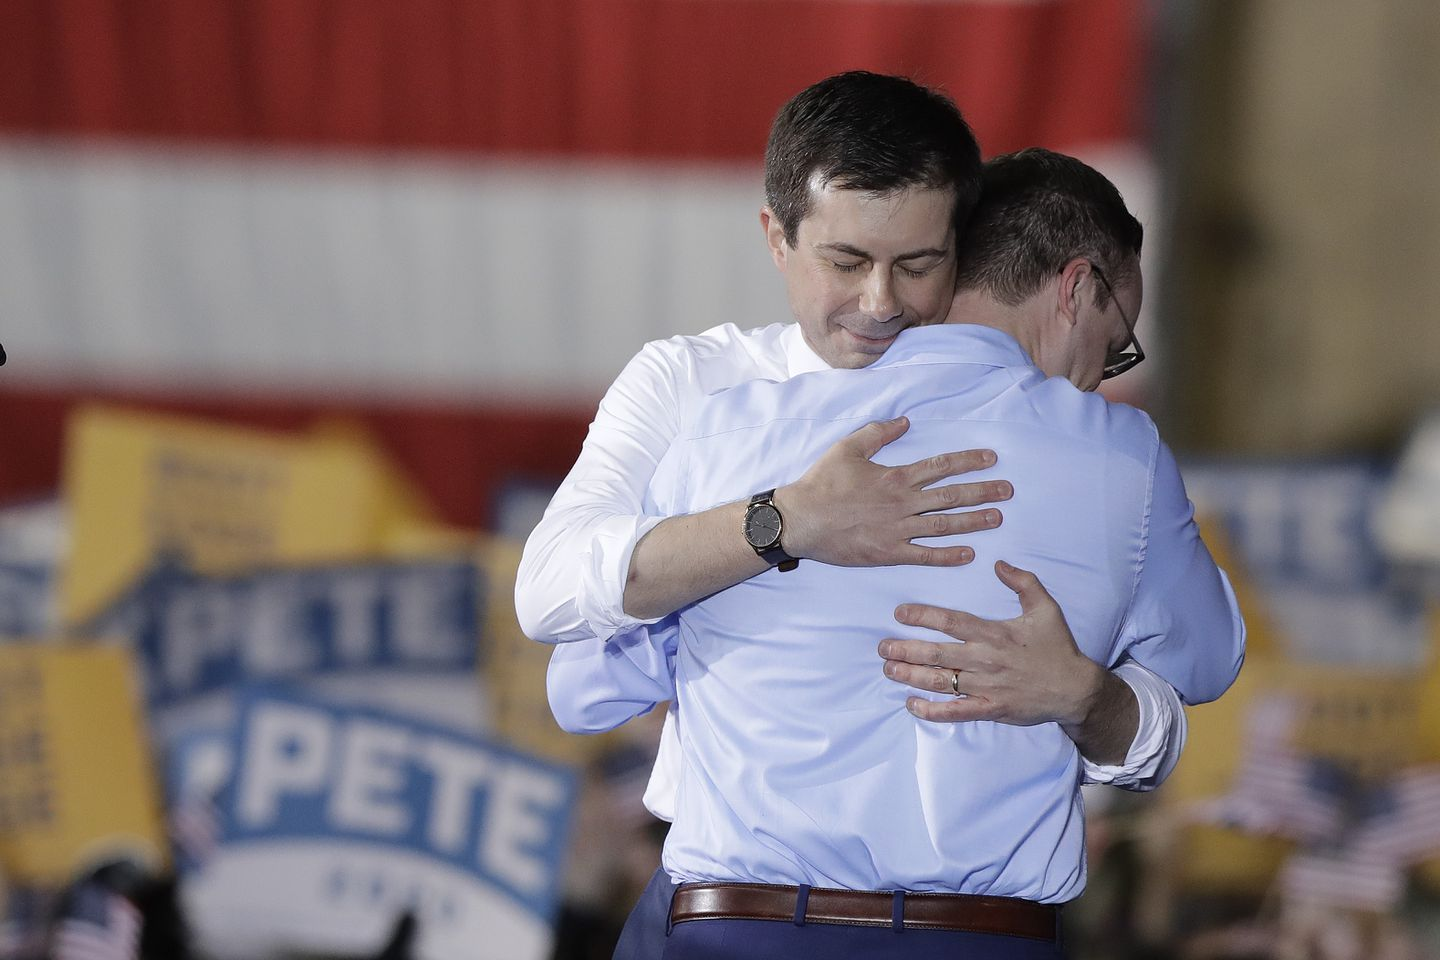 Beto O'Rourke tweets in support of Pete Buttigieg after homophobic remarks